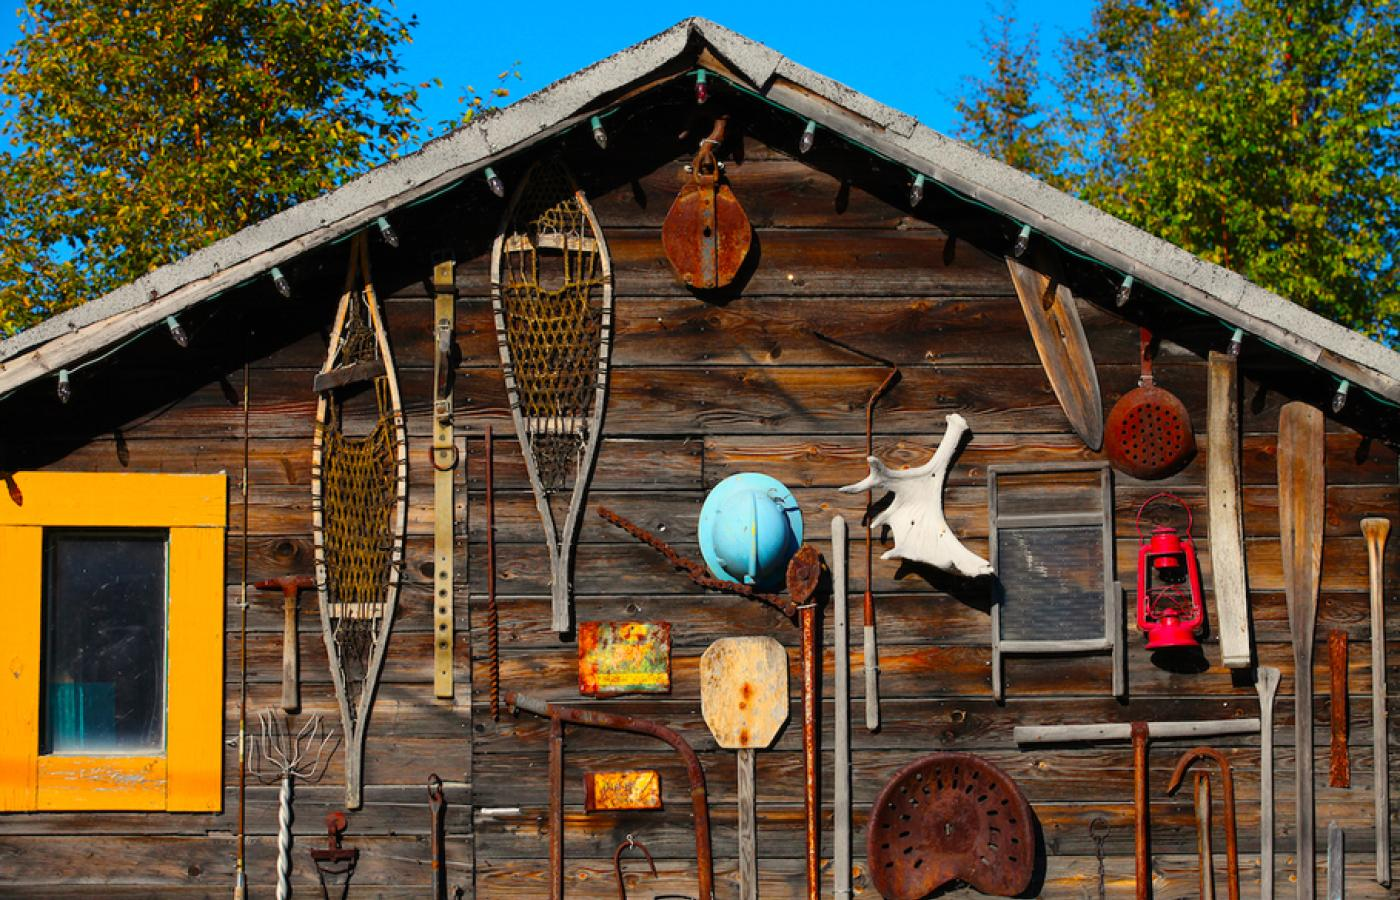 Eclectic shacks in Yellowknife, Northwest Territories